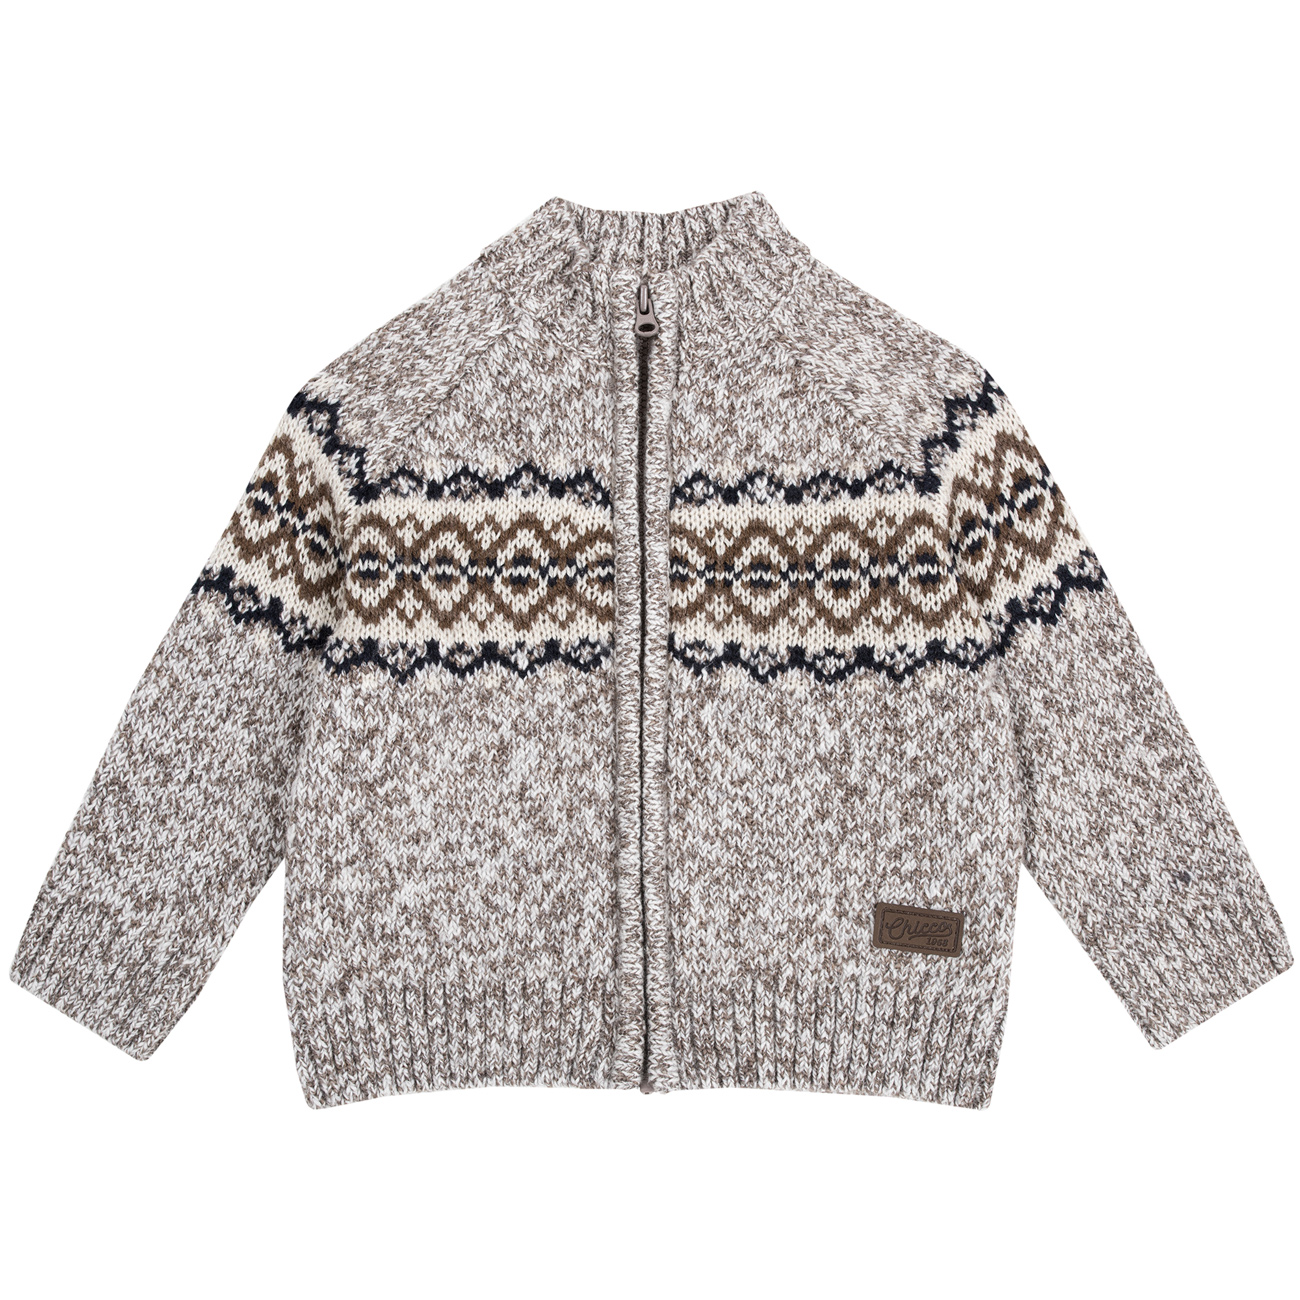 Cardigan copii Chicco maro 104